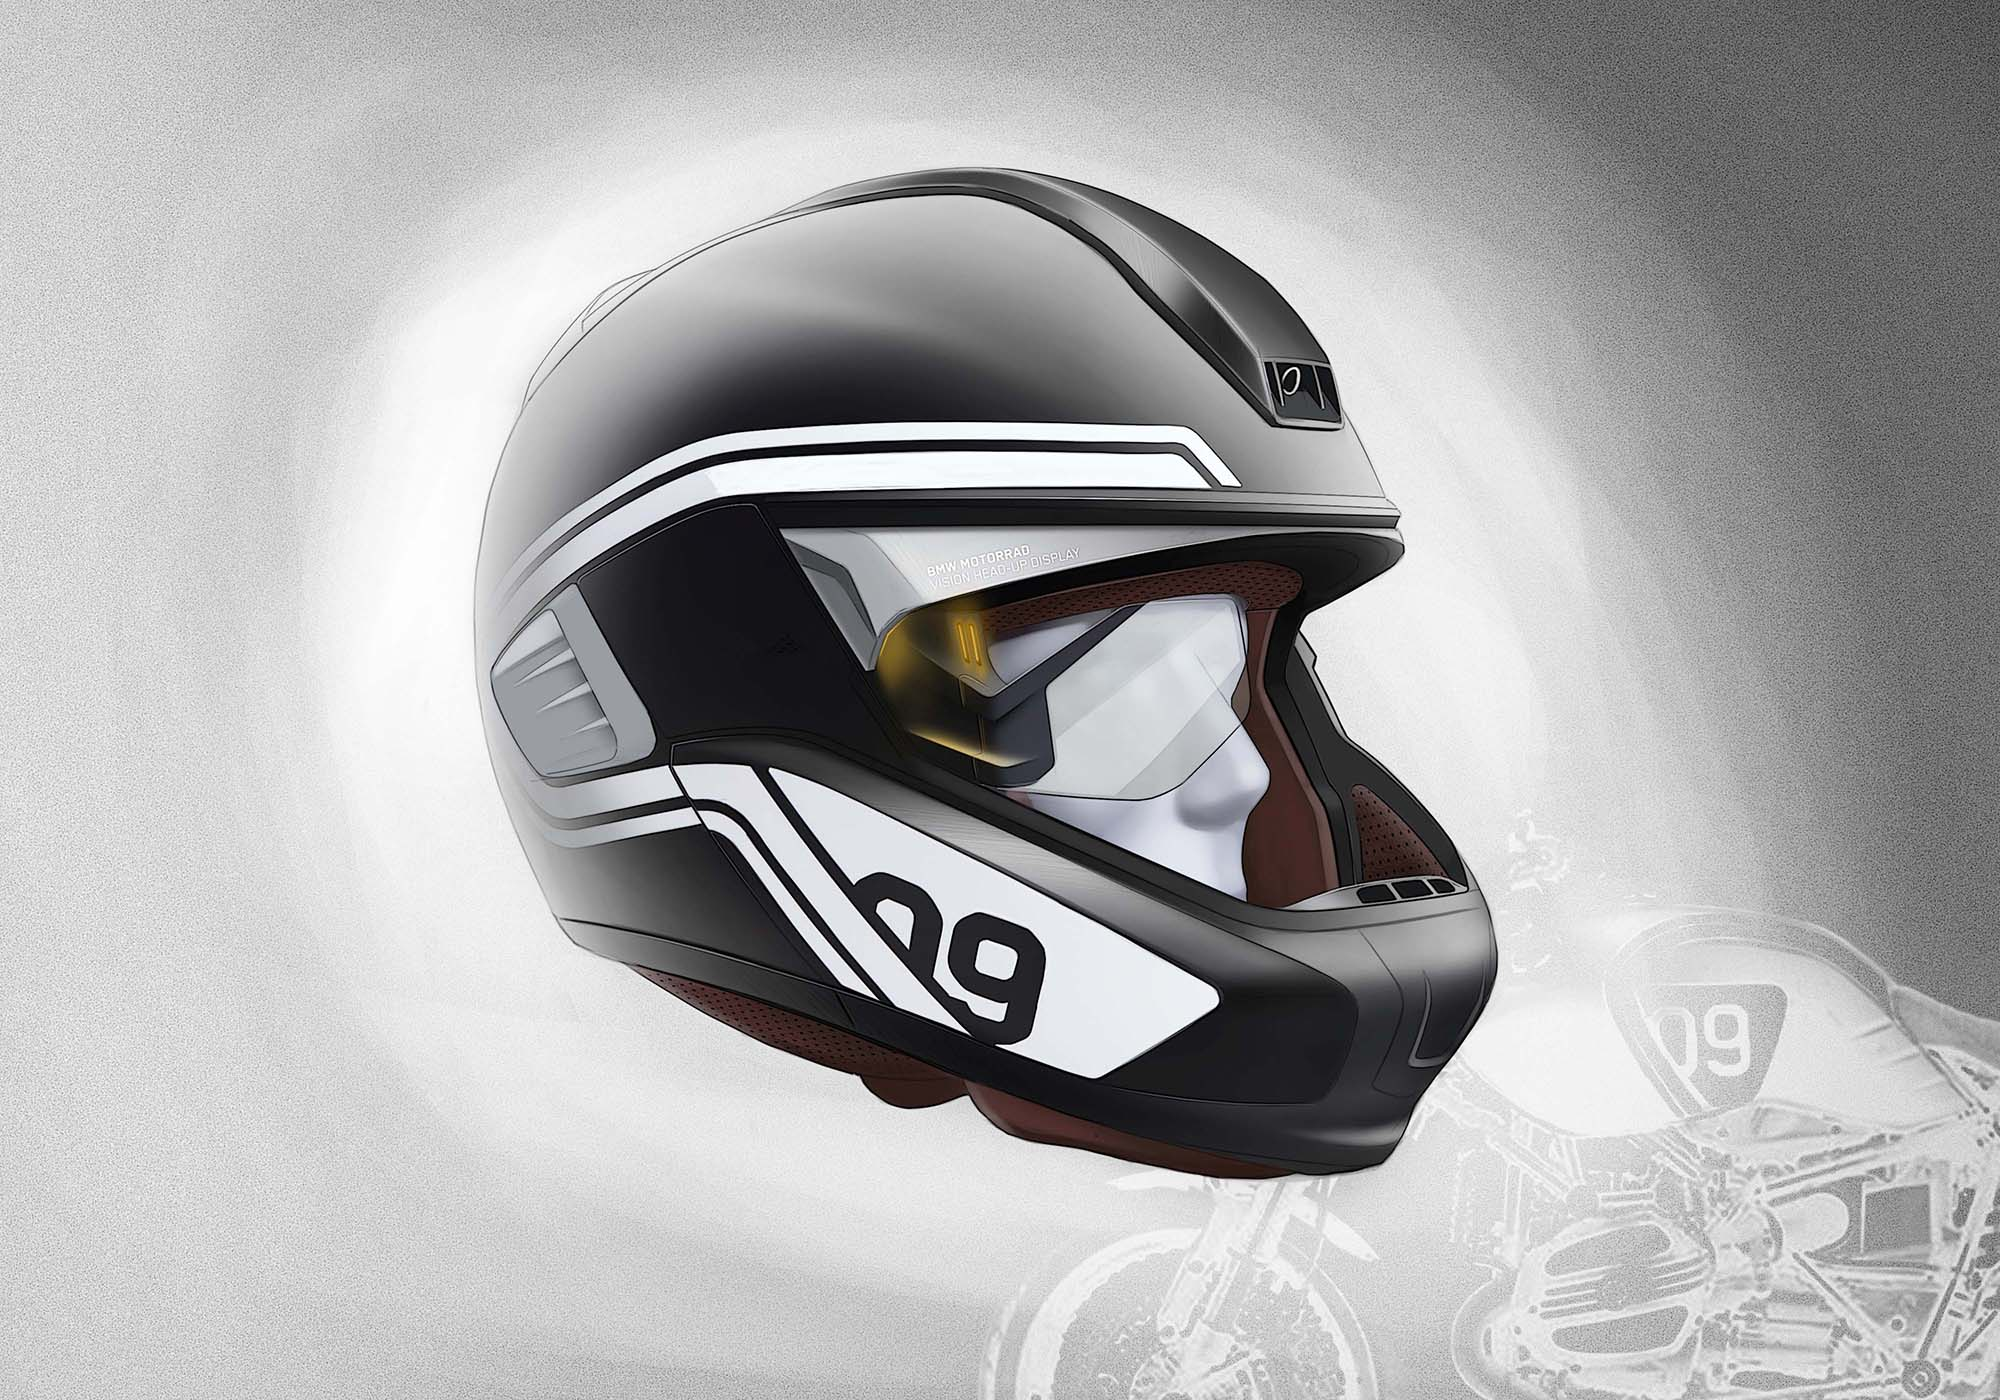 Motorcycle Helmet With Hud >> BMW Developing HUD Motorcycle Helmet